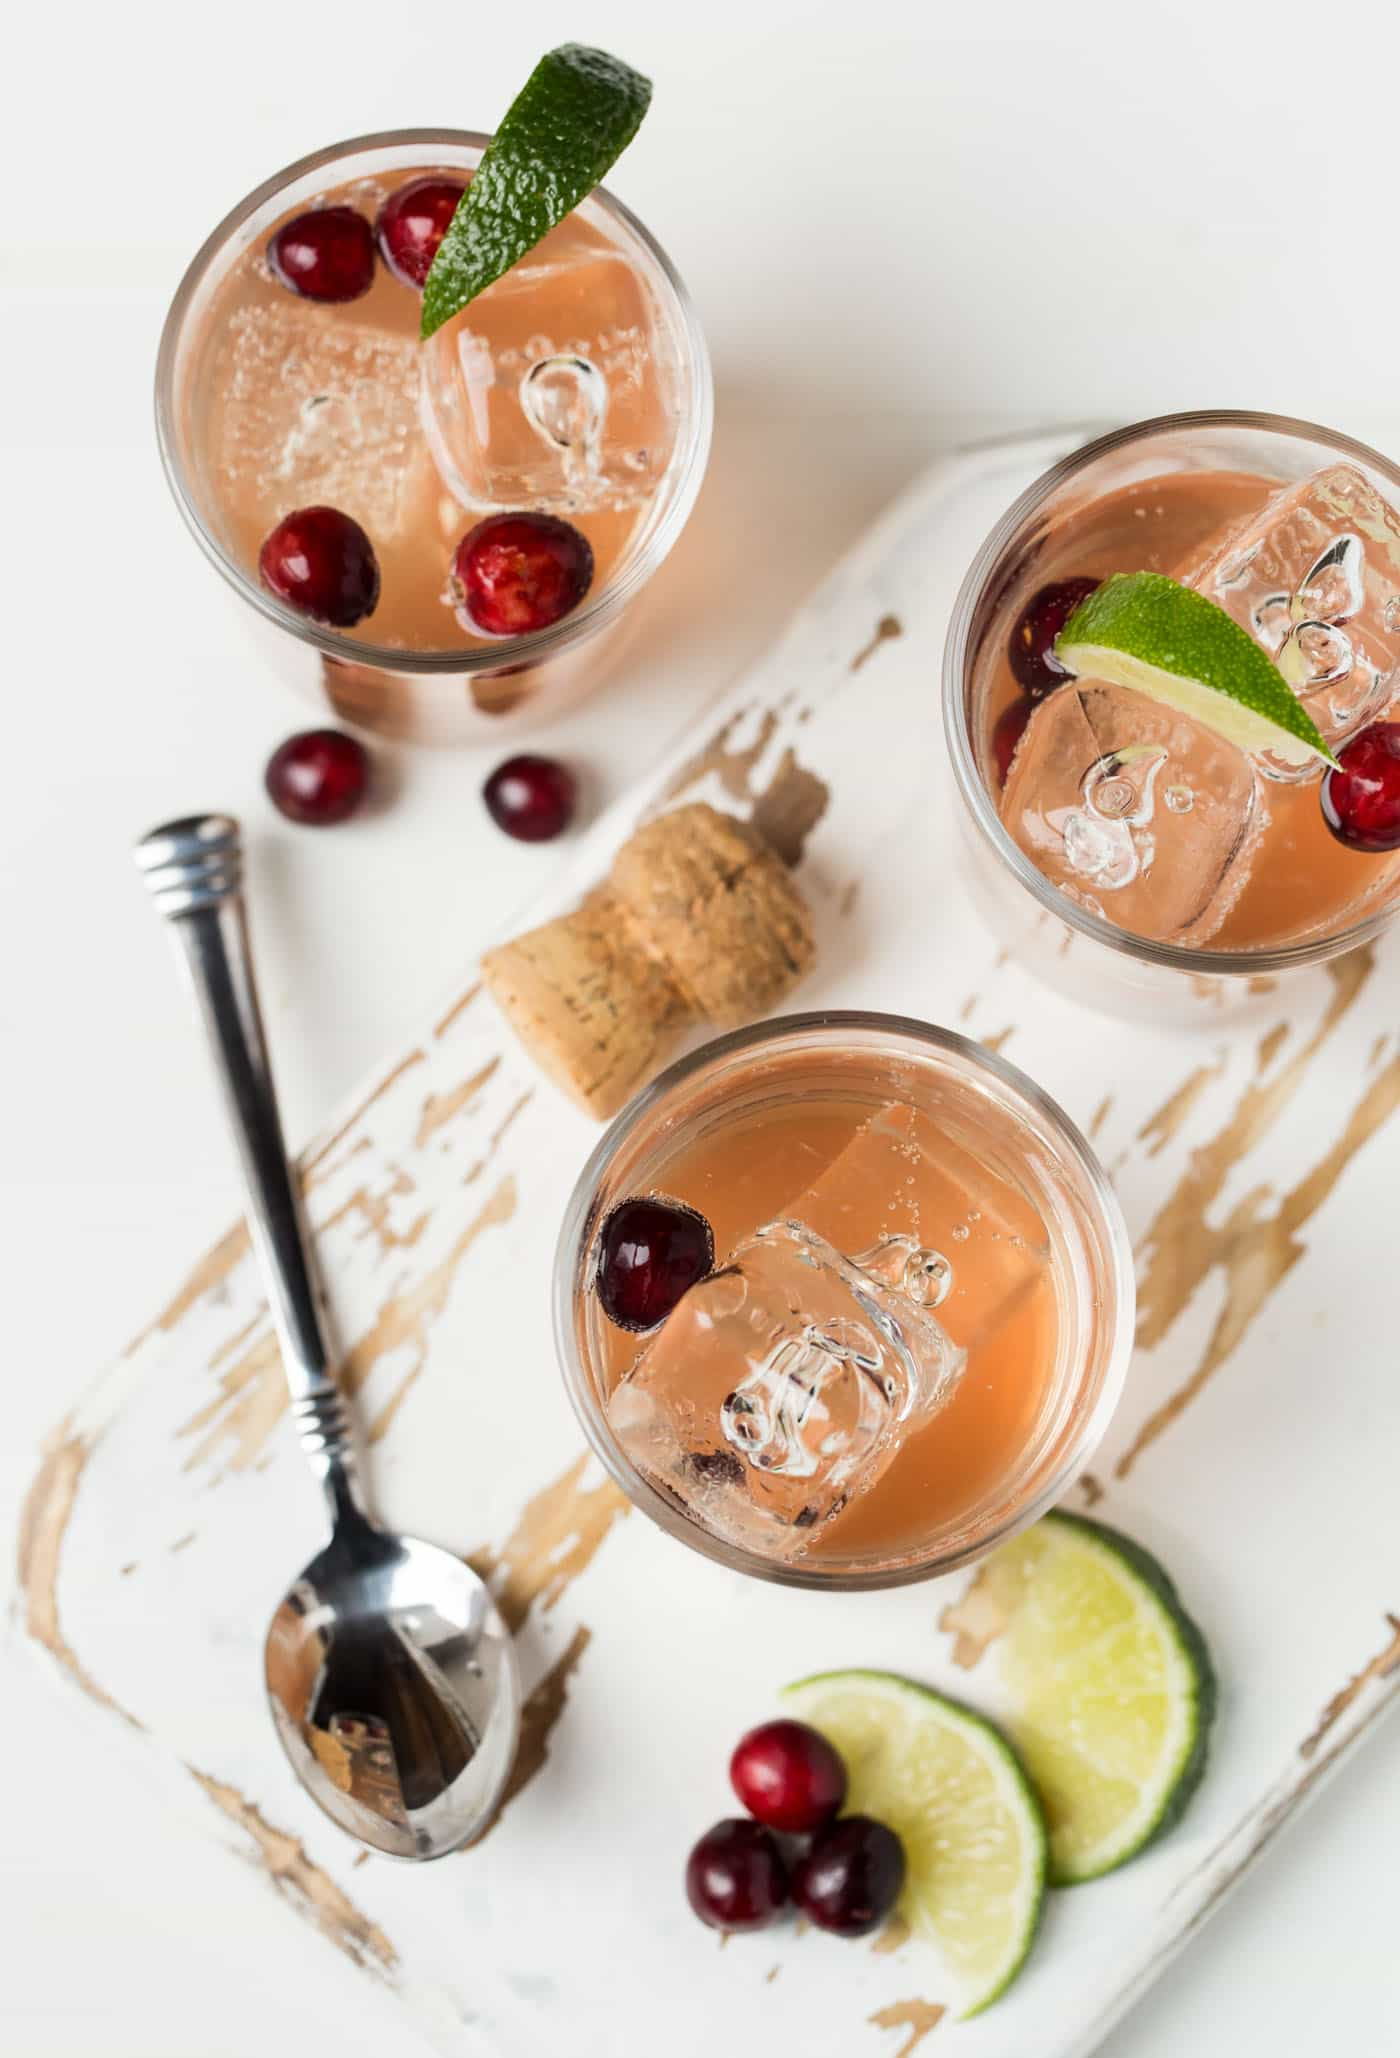 Top down view of three glasses of Sparkling Cranberry Gin Cocktails on a white distressed board. Glasses are garnished with fresh cranberries and lime wedges.